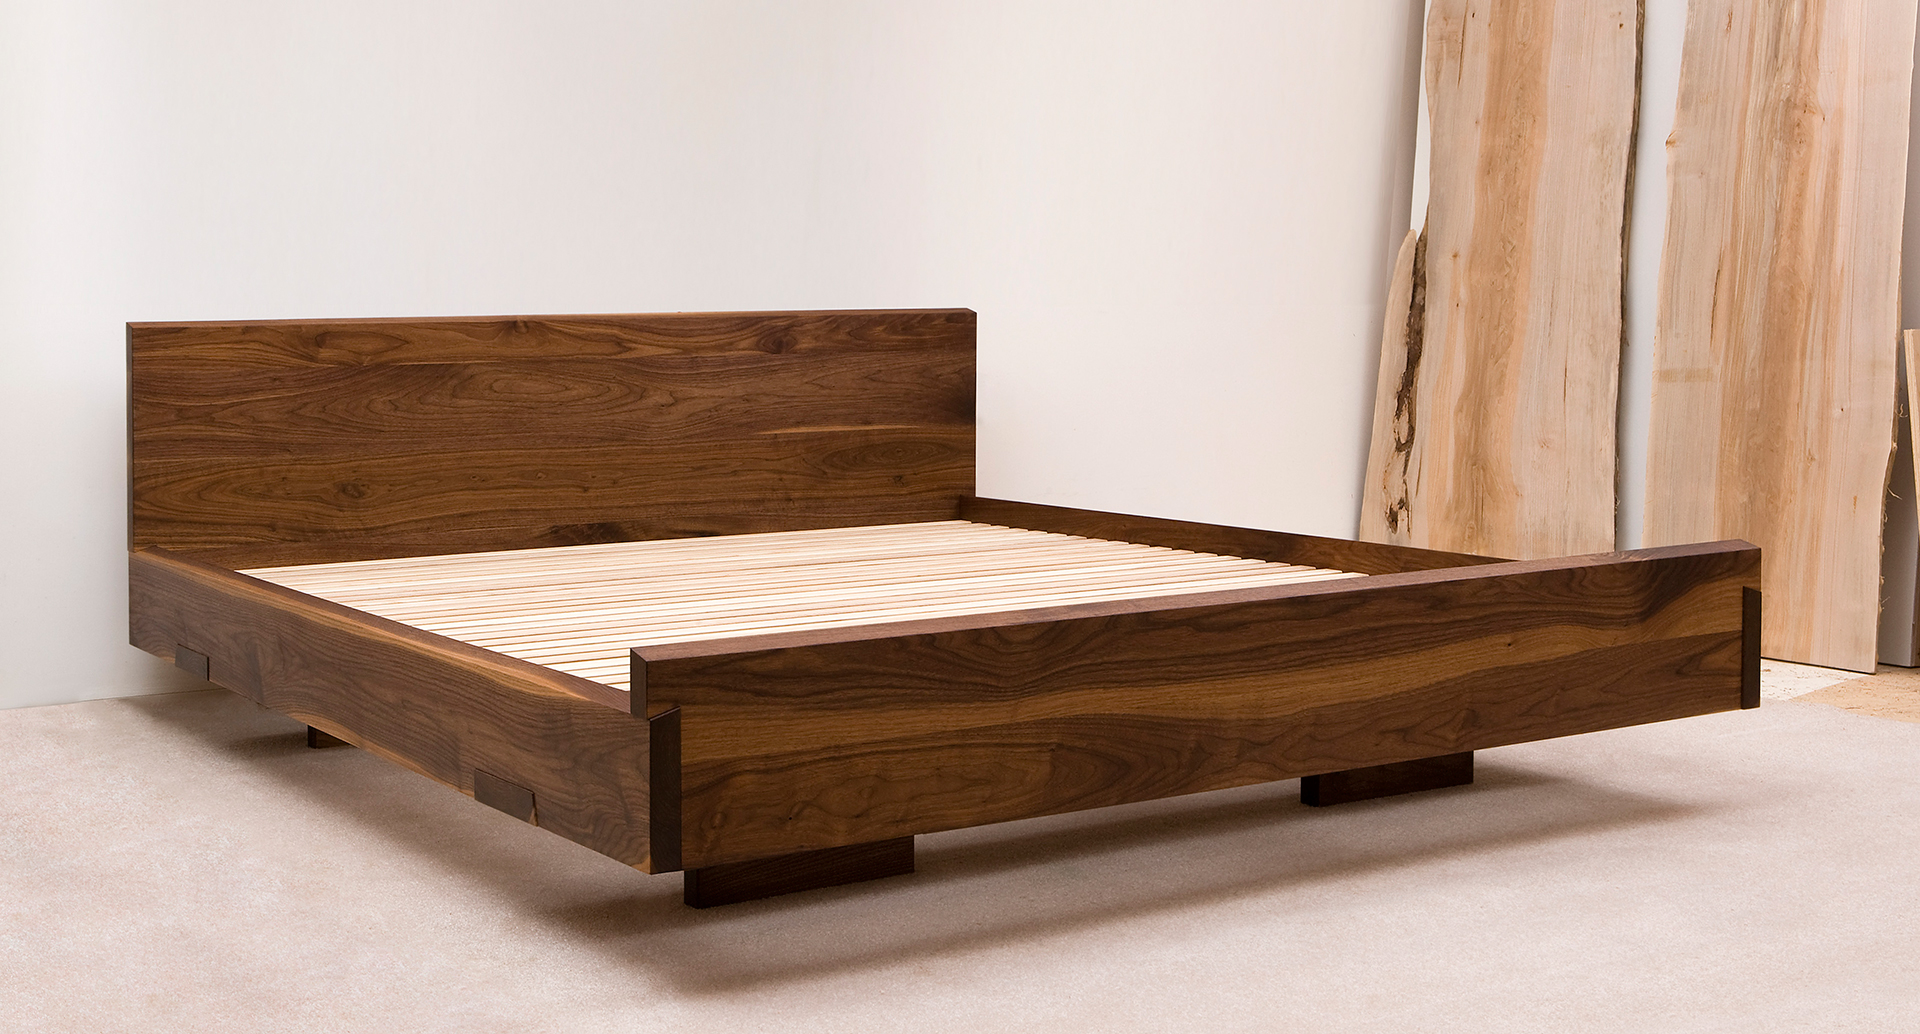 Mapleart custom wood furniture vancouver bcsunflower for Beds vancouver